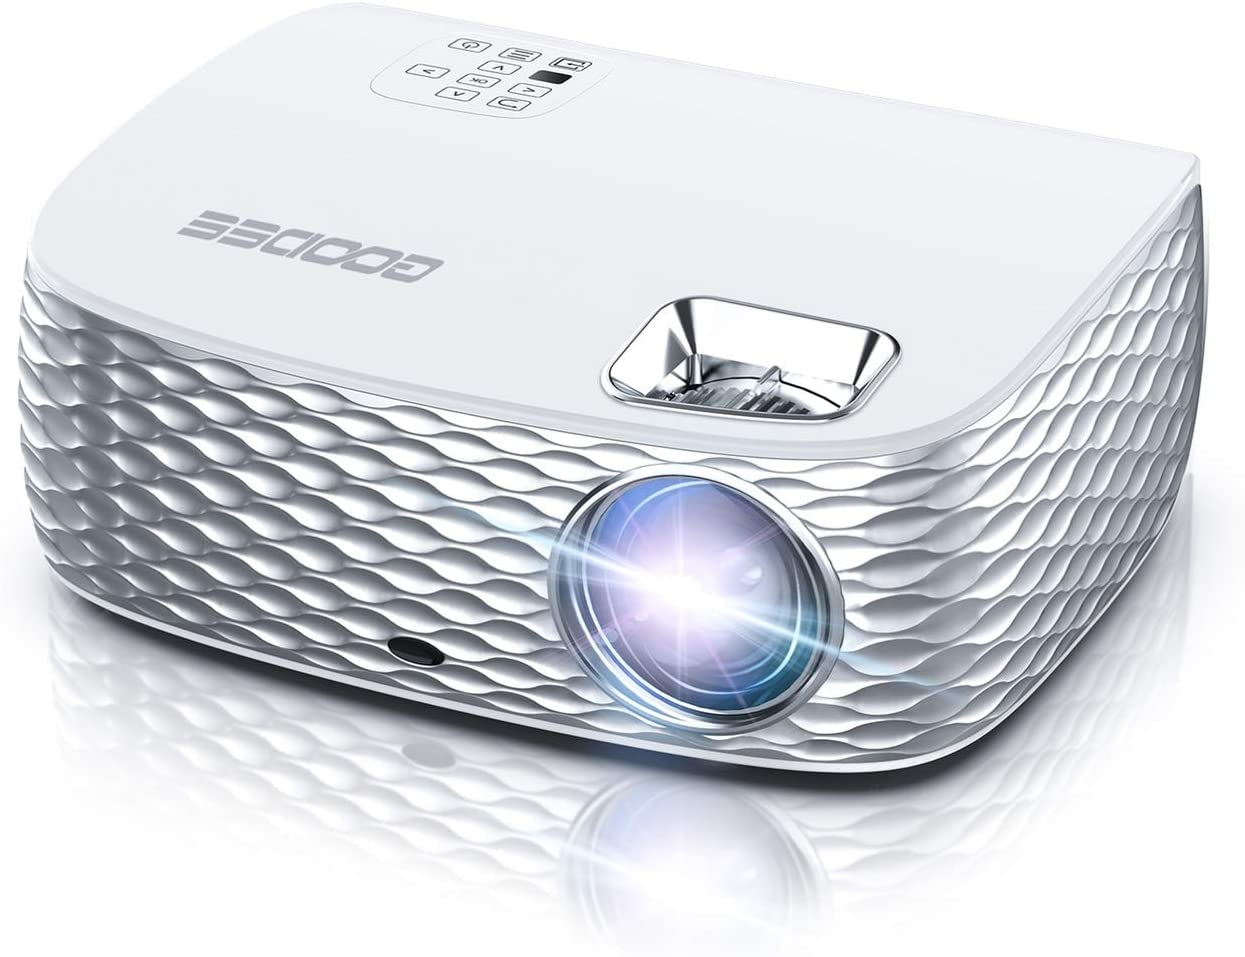 Projector, GooDee HD Video Projector Native 1920x1080P, Outdoor Movie Projector 9500L 300'' Touch Keys Home Theater Projector with 50000 Hrs Lamp Life, Support Fire TV Stick/PS4/HDMI/iOS /Android